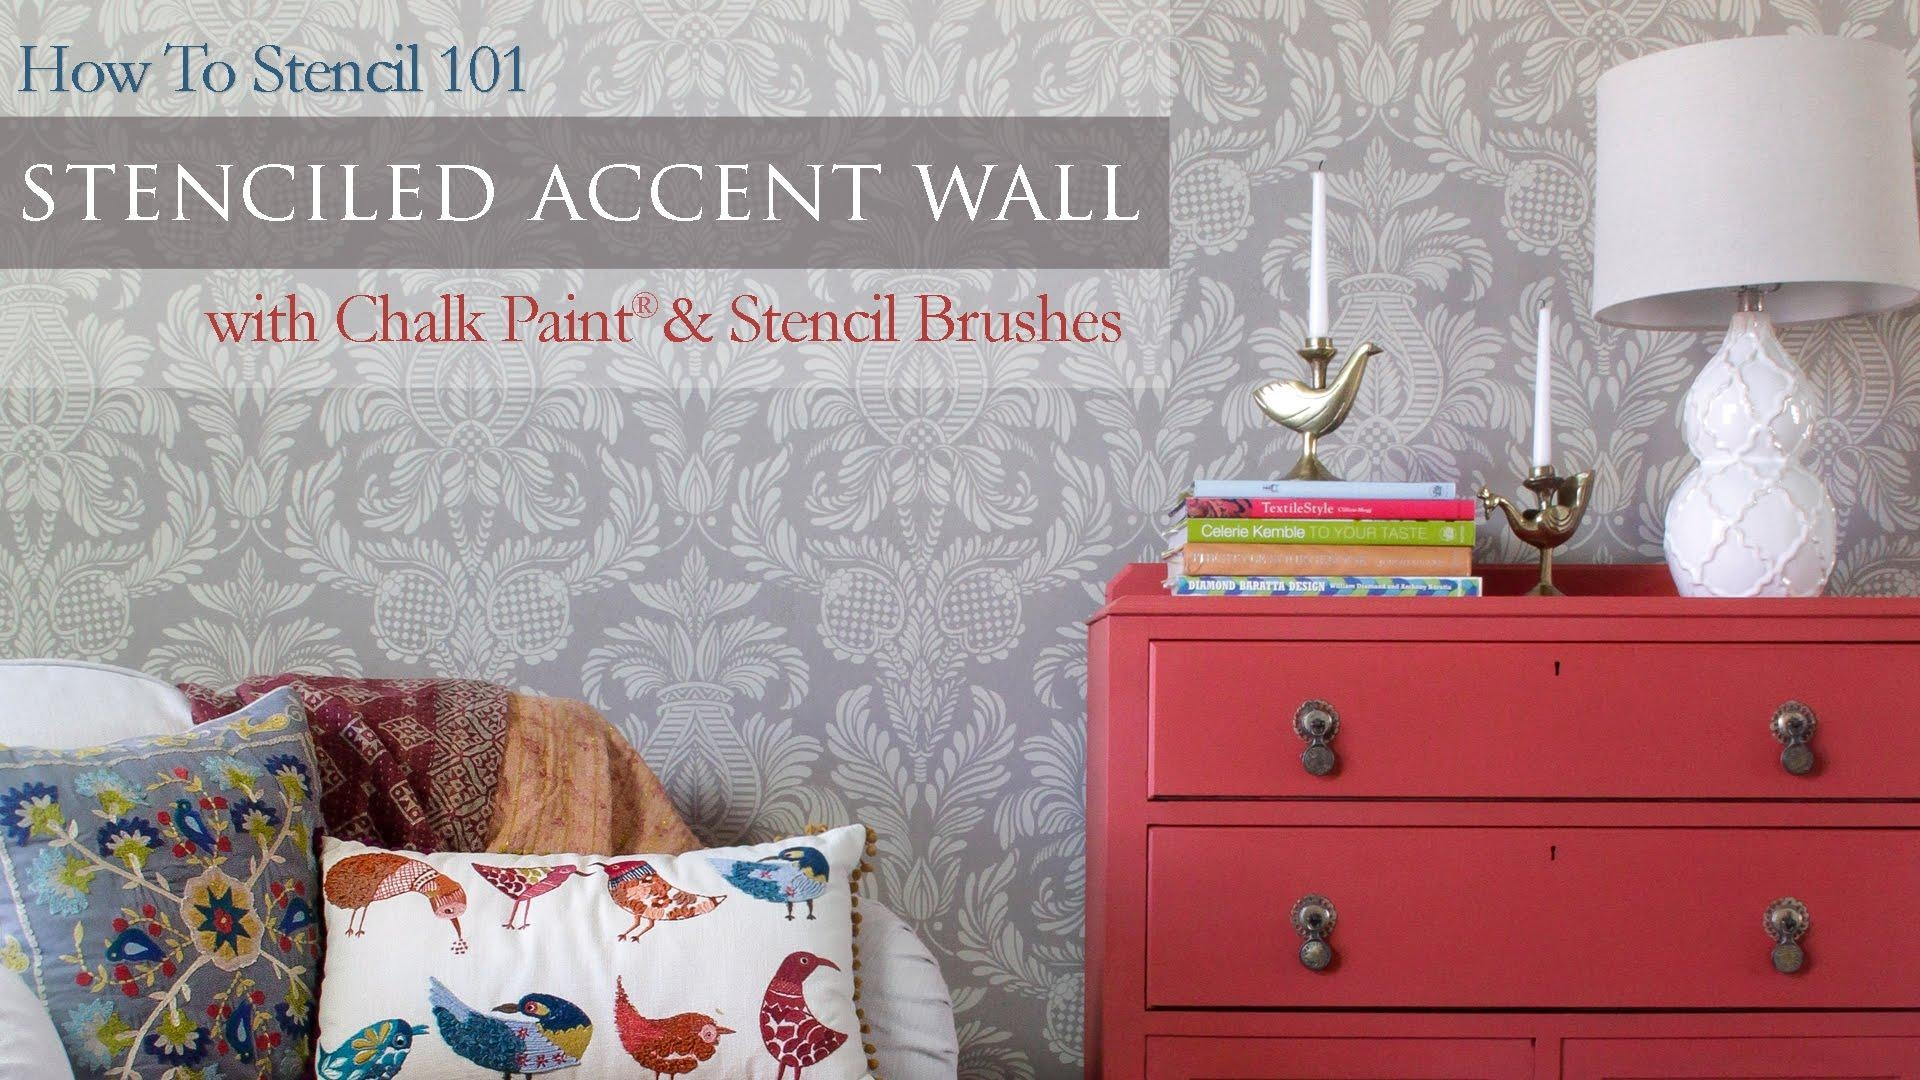 How To Stencil 101: Painting An Accent Wall With Wall Stencils And Intended For Space Stencils For Walls (Image 14 of 20)